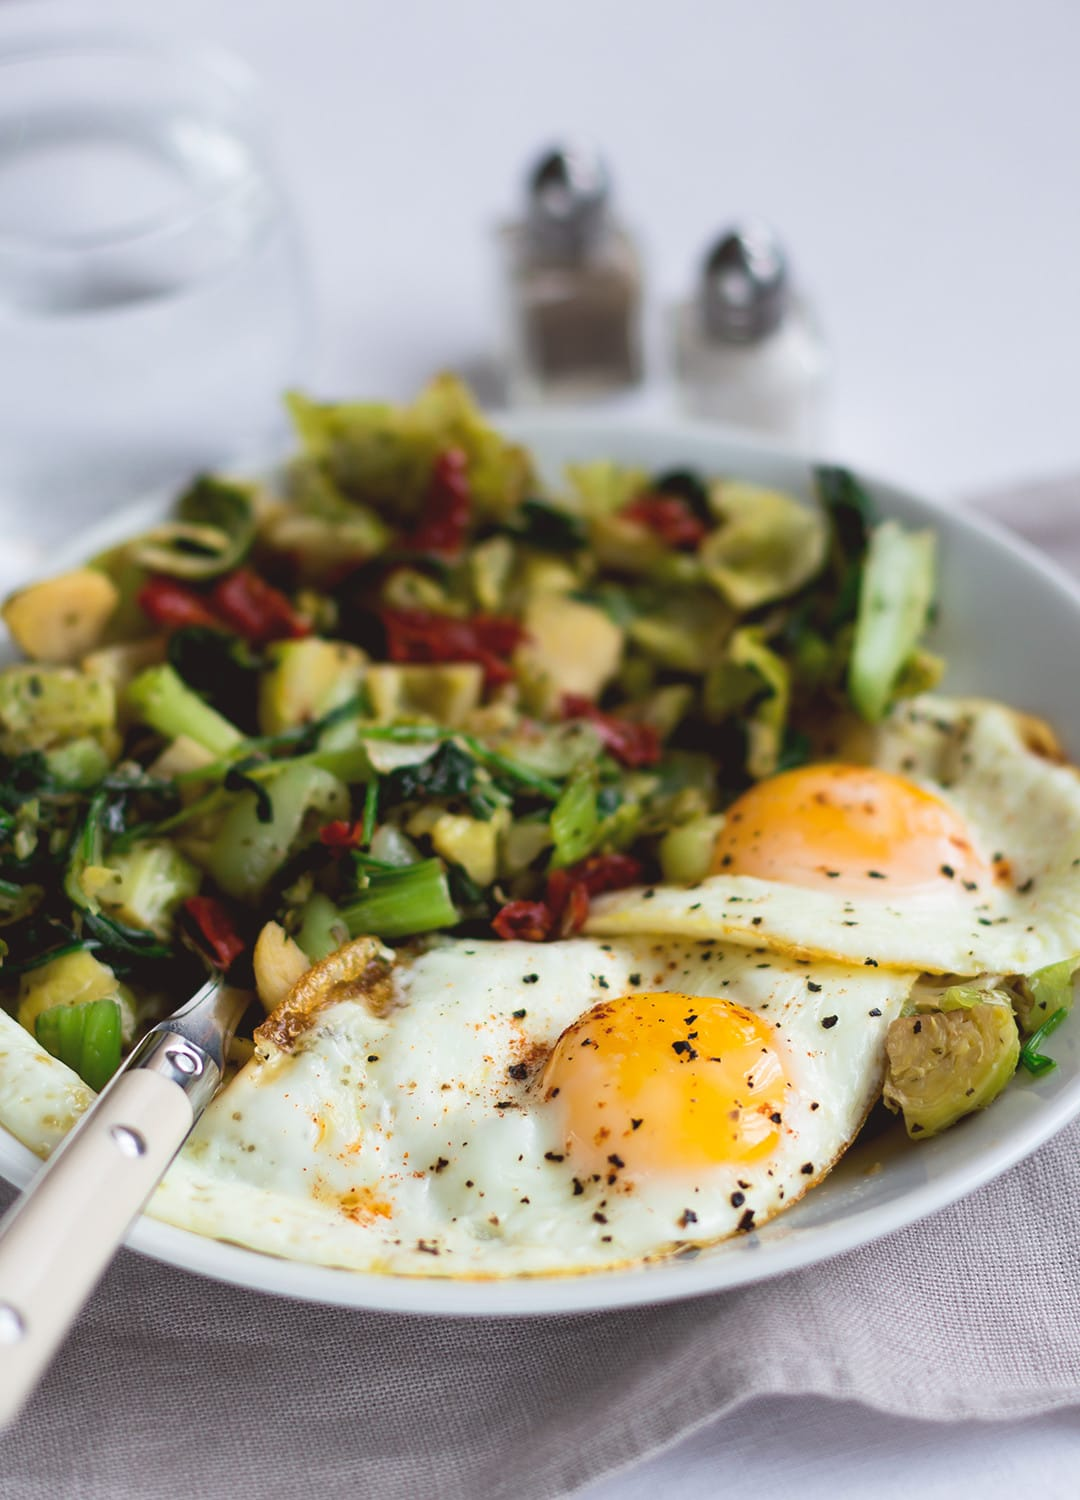 Sauteed pak Choy and Brussels Sprouts with Eggs Sunny Side Up - this is the ultimate savory breafast for a morning when you have a little bit more time to spend in the kitchen. It's probably my most favorite savory breakfast, because it includes eggs and all things green (I also sneaked in some baby spinach for even more of a healthy kick!) . I love to pair this with avocado on toast. | thehealthfulideas.com